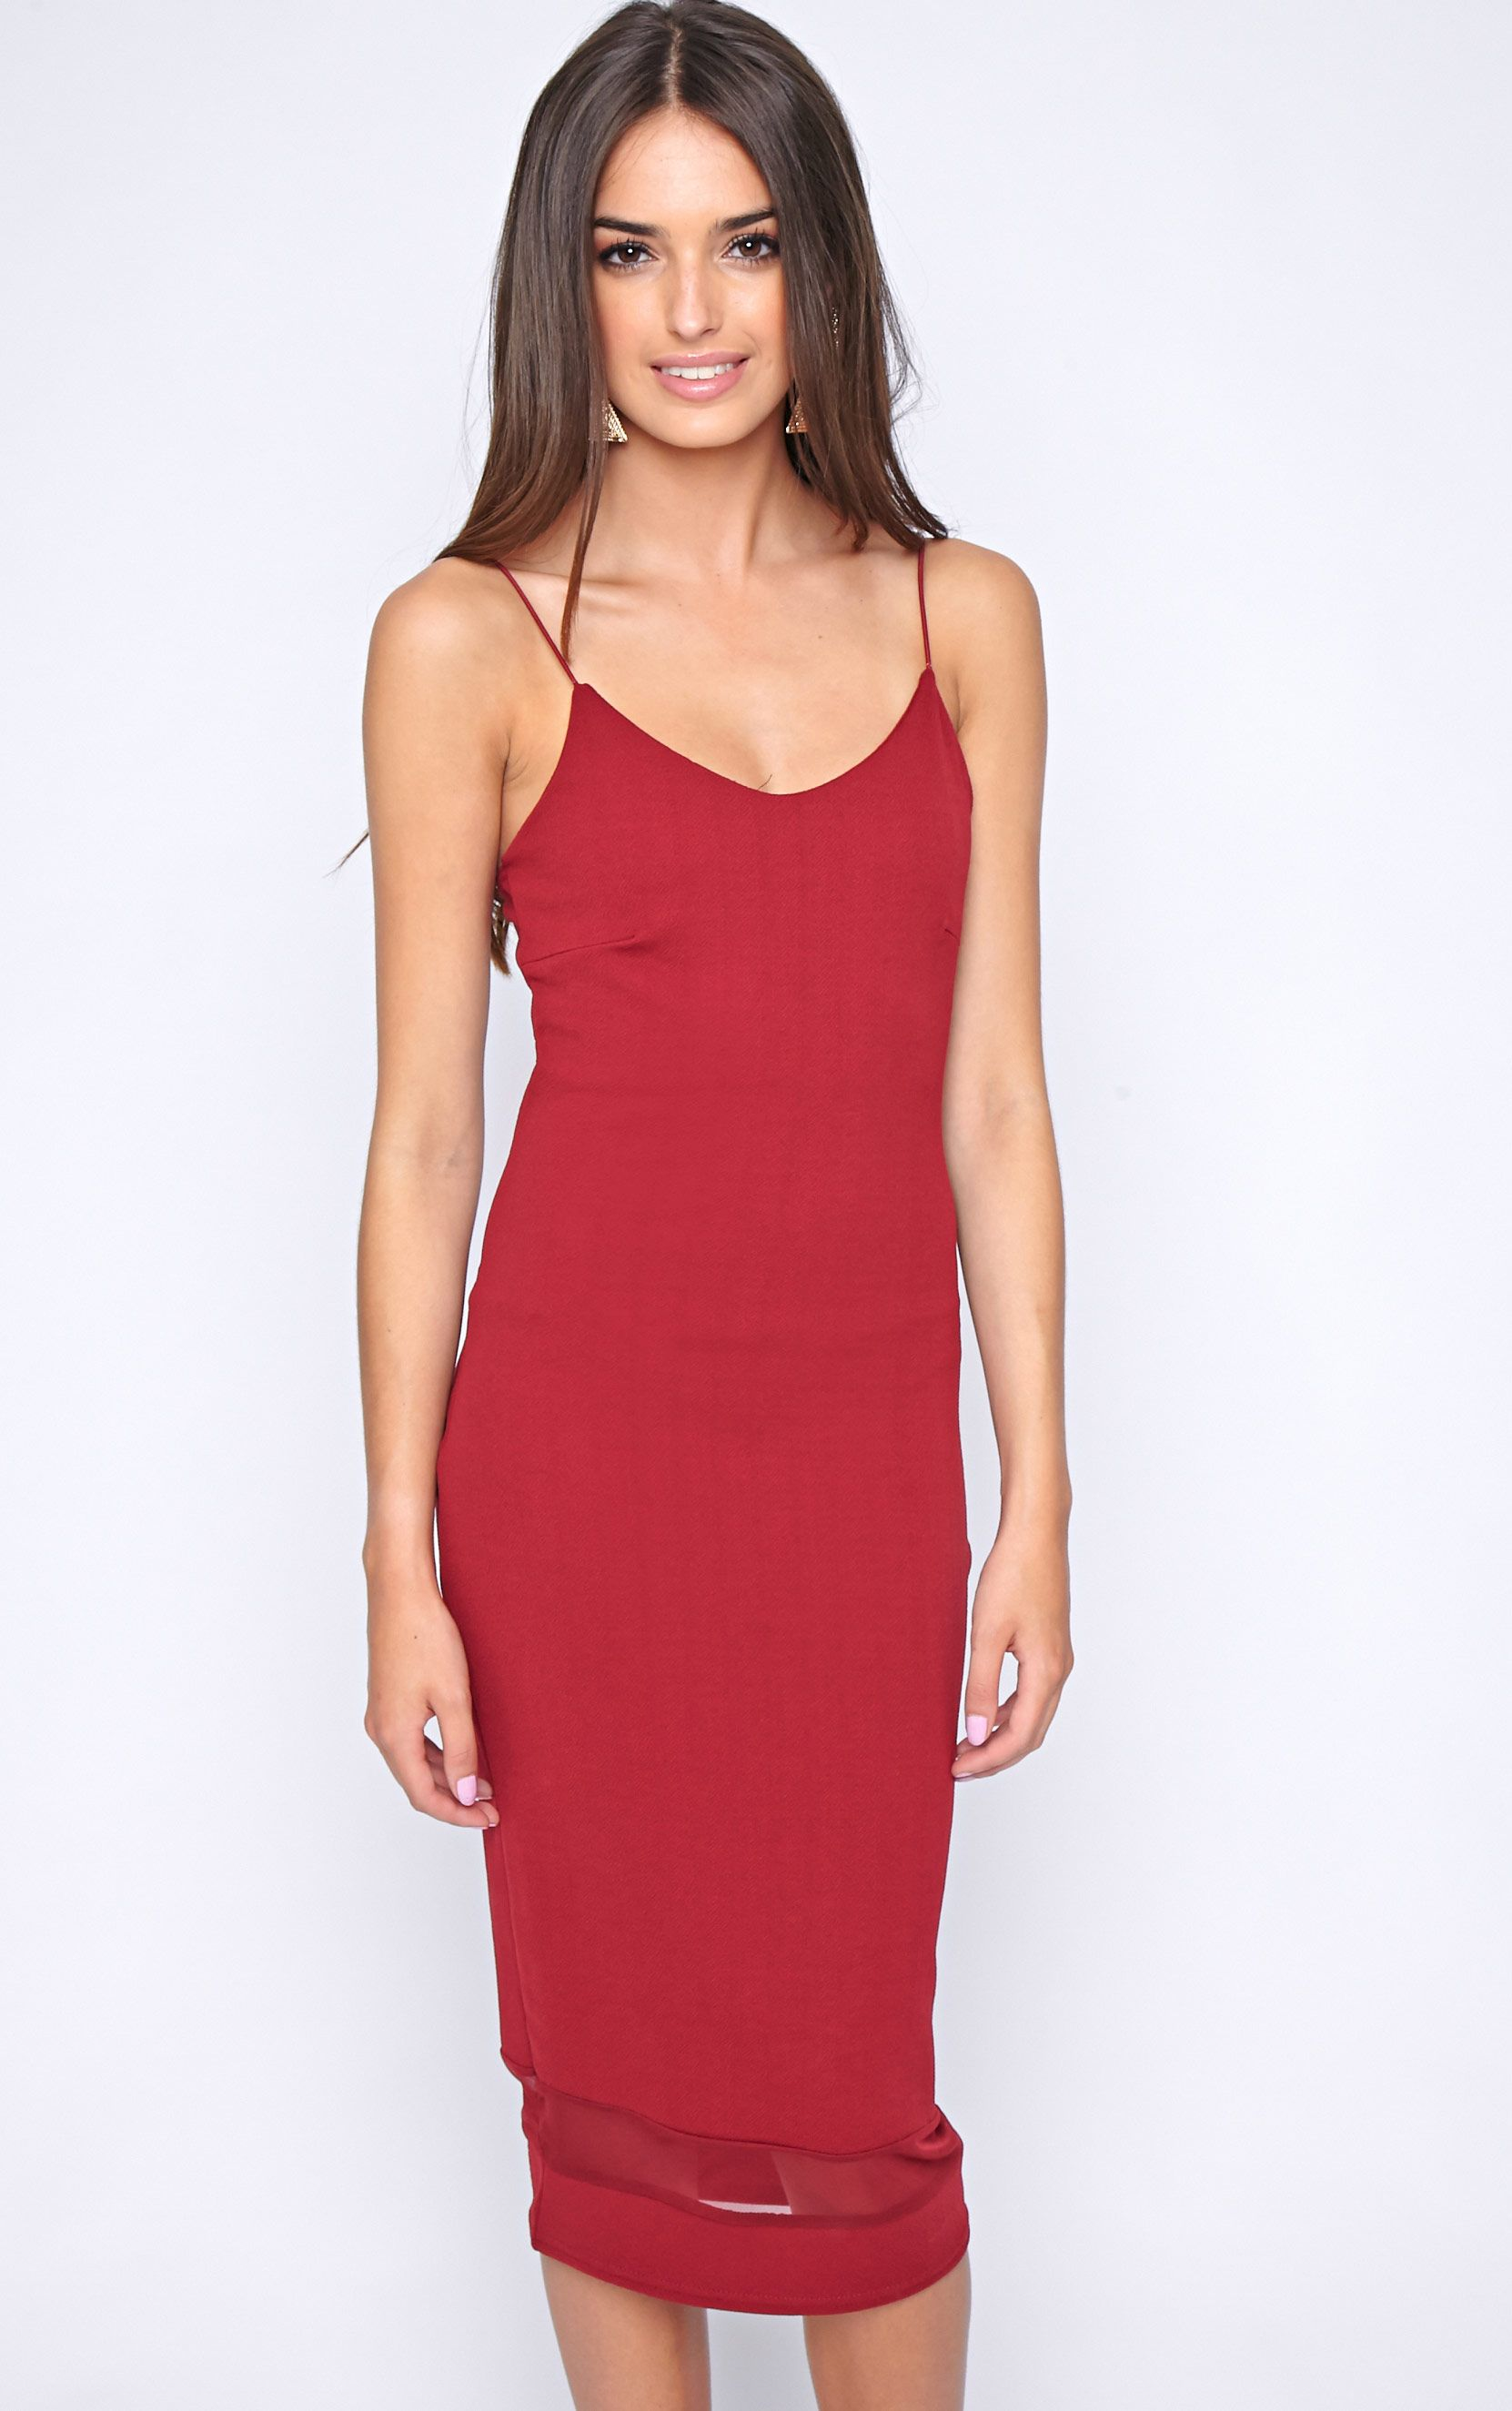 Ryleigh Wine Mesh Insert Midi Dress 1